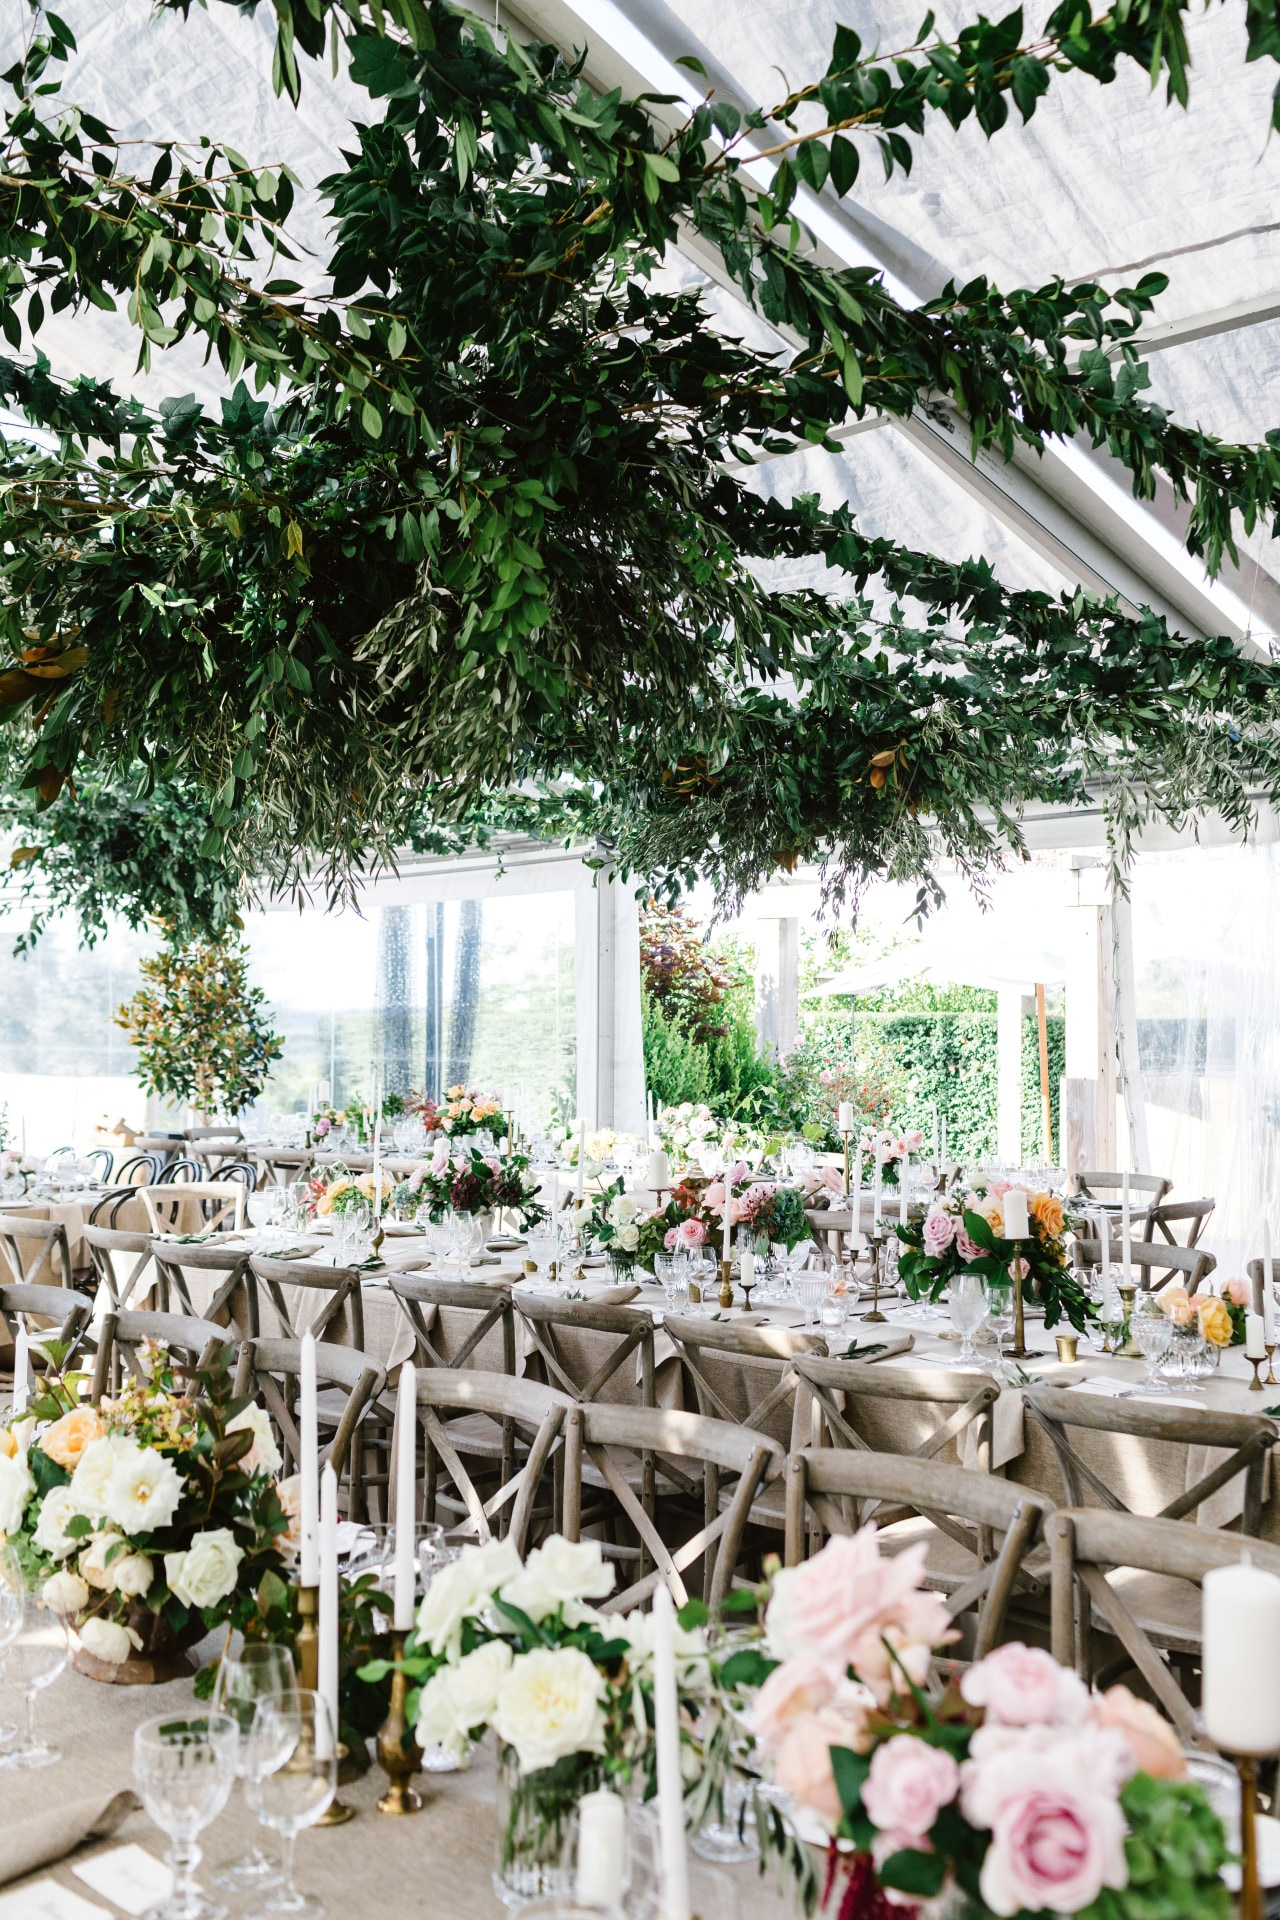 These are the biggest trends in wedding flowers for 2018, according to Pinterest